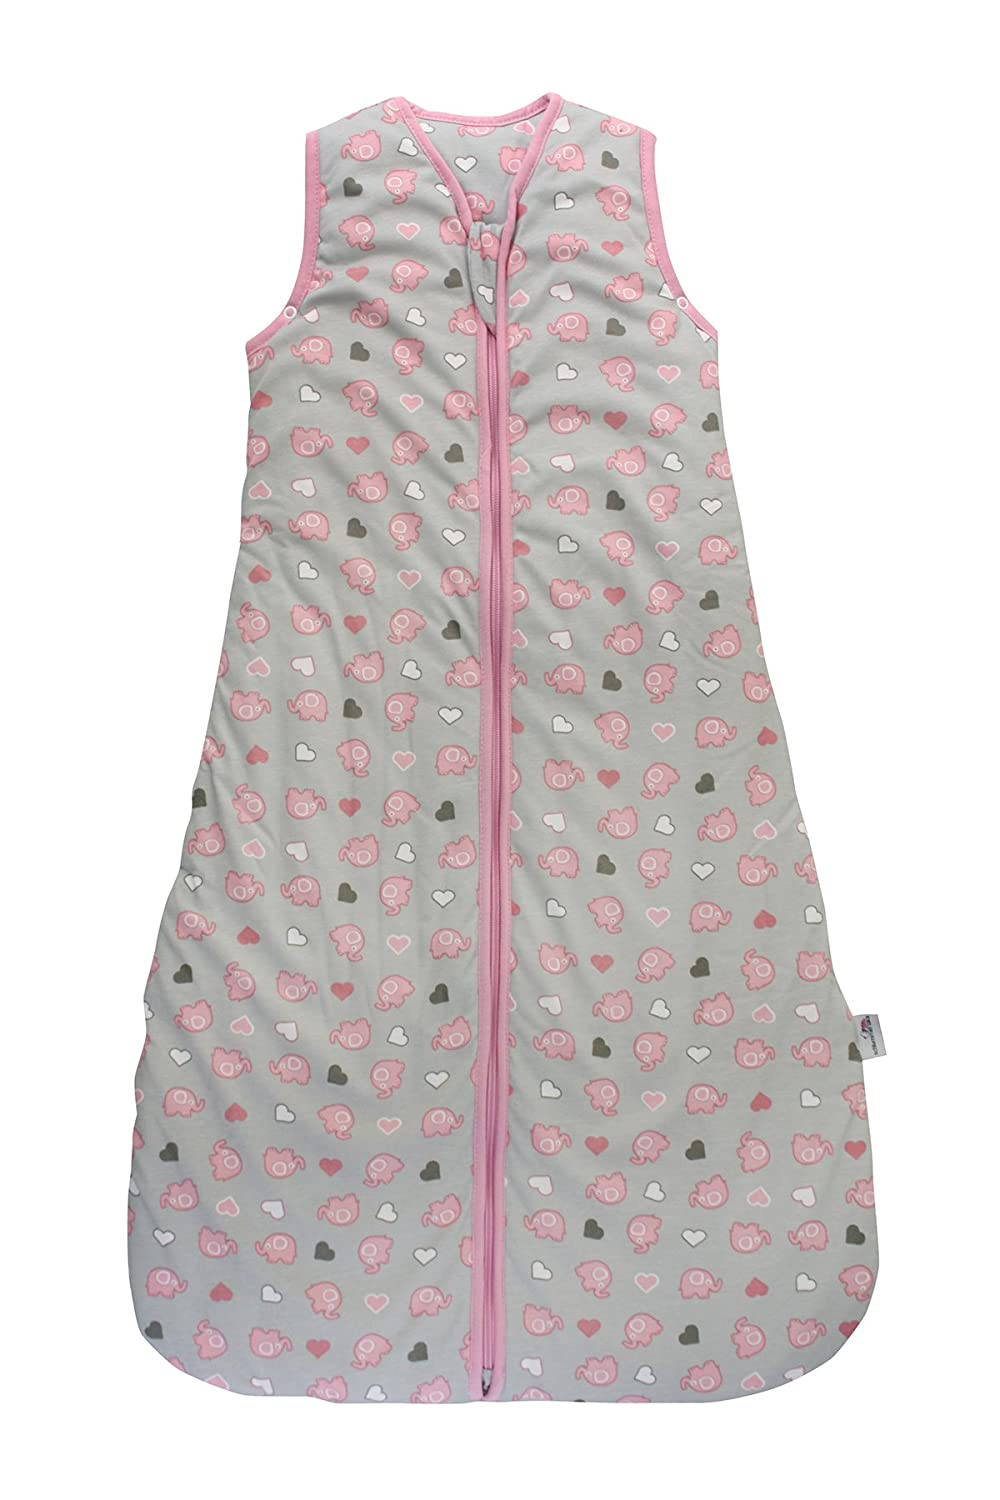 Slumbersac Baby Sleeping Bag 2.5 Tog Simply Pink Elephants 6-18 Months